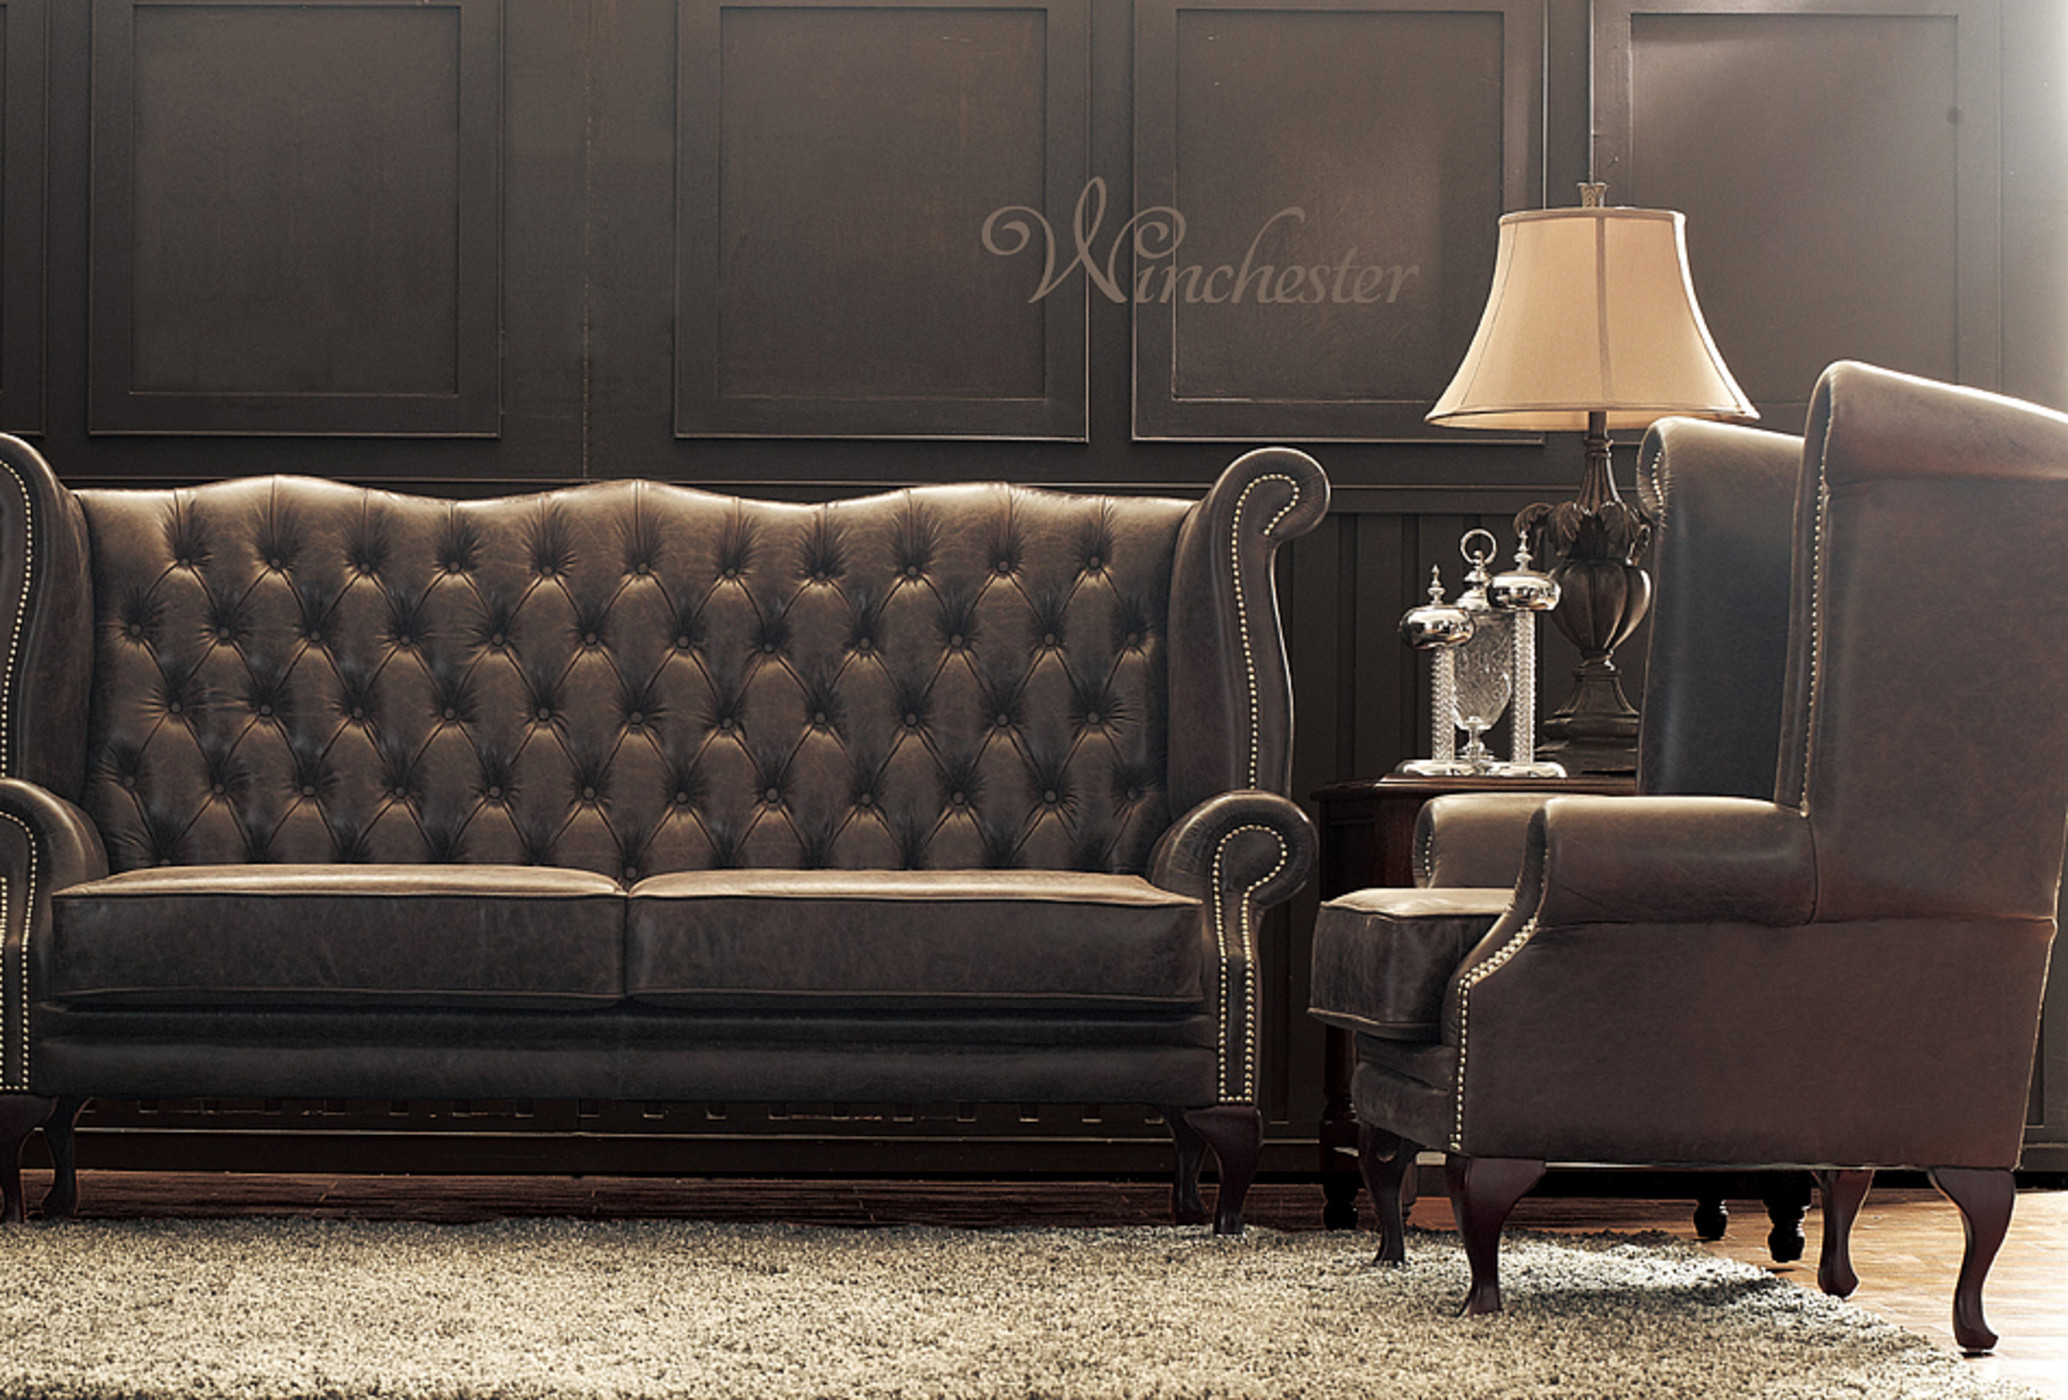 where can i find a traditional leather sofa rh winchesterleather com Classic English Leather Sofas Classic English Leather Sofas